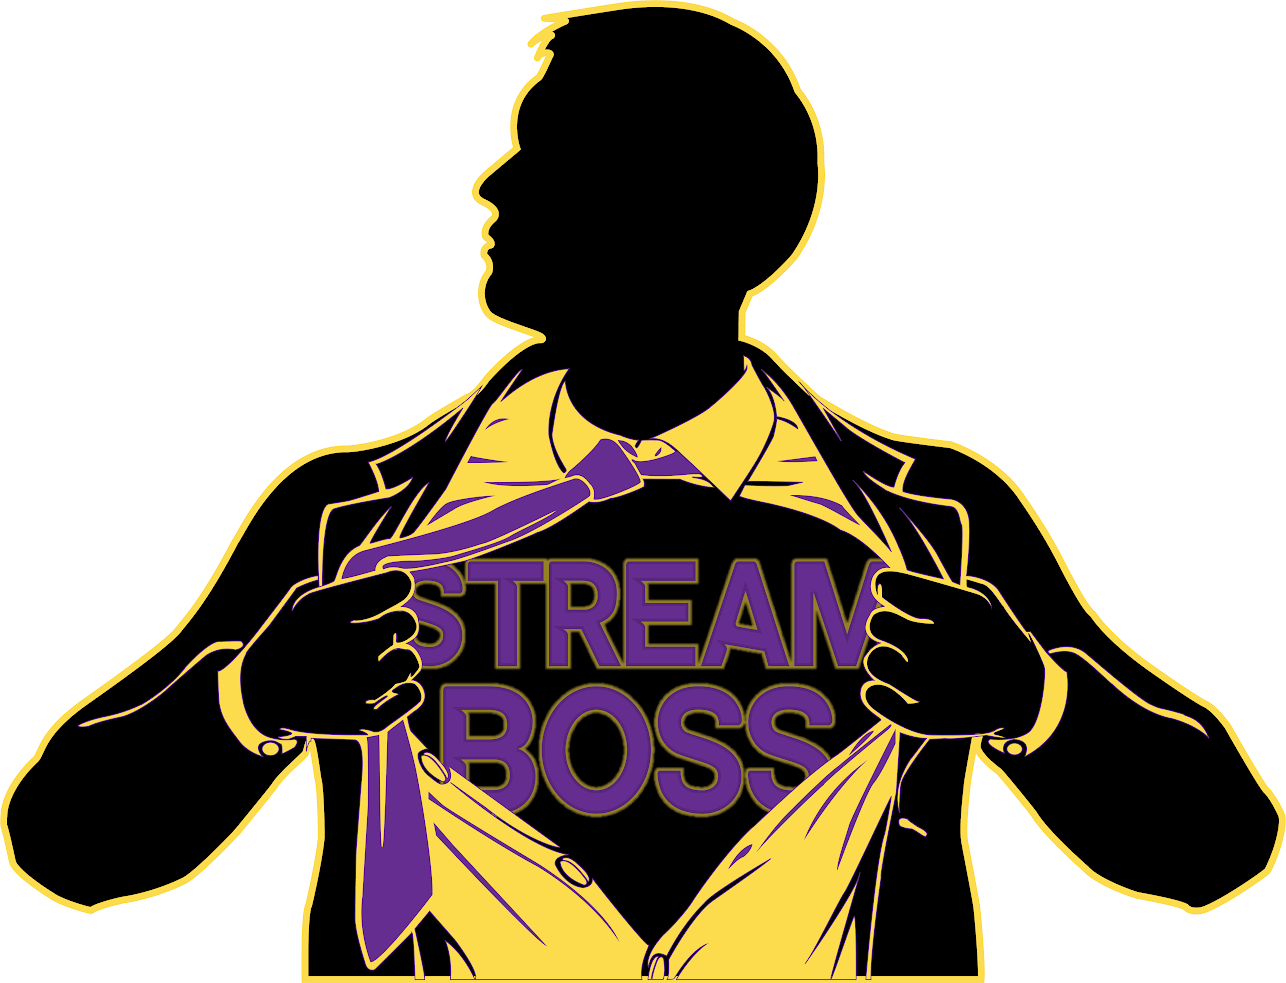 The Stream Boss